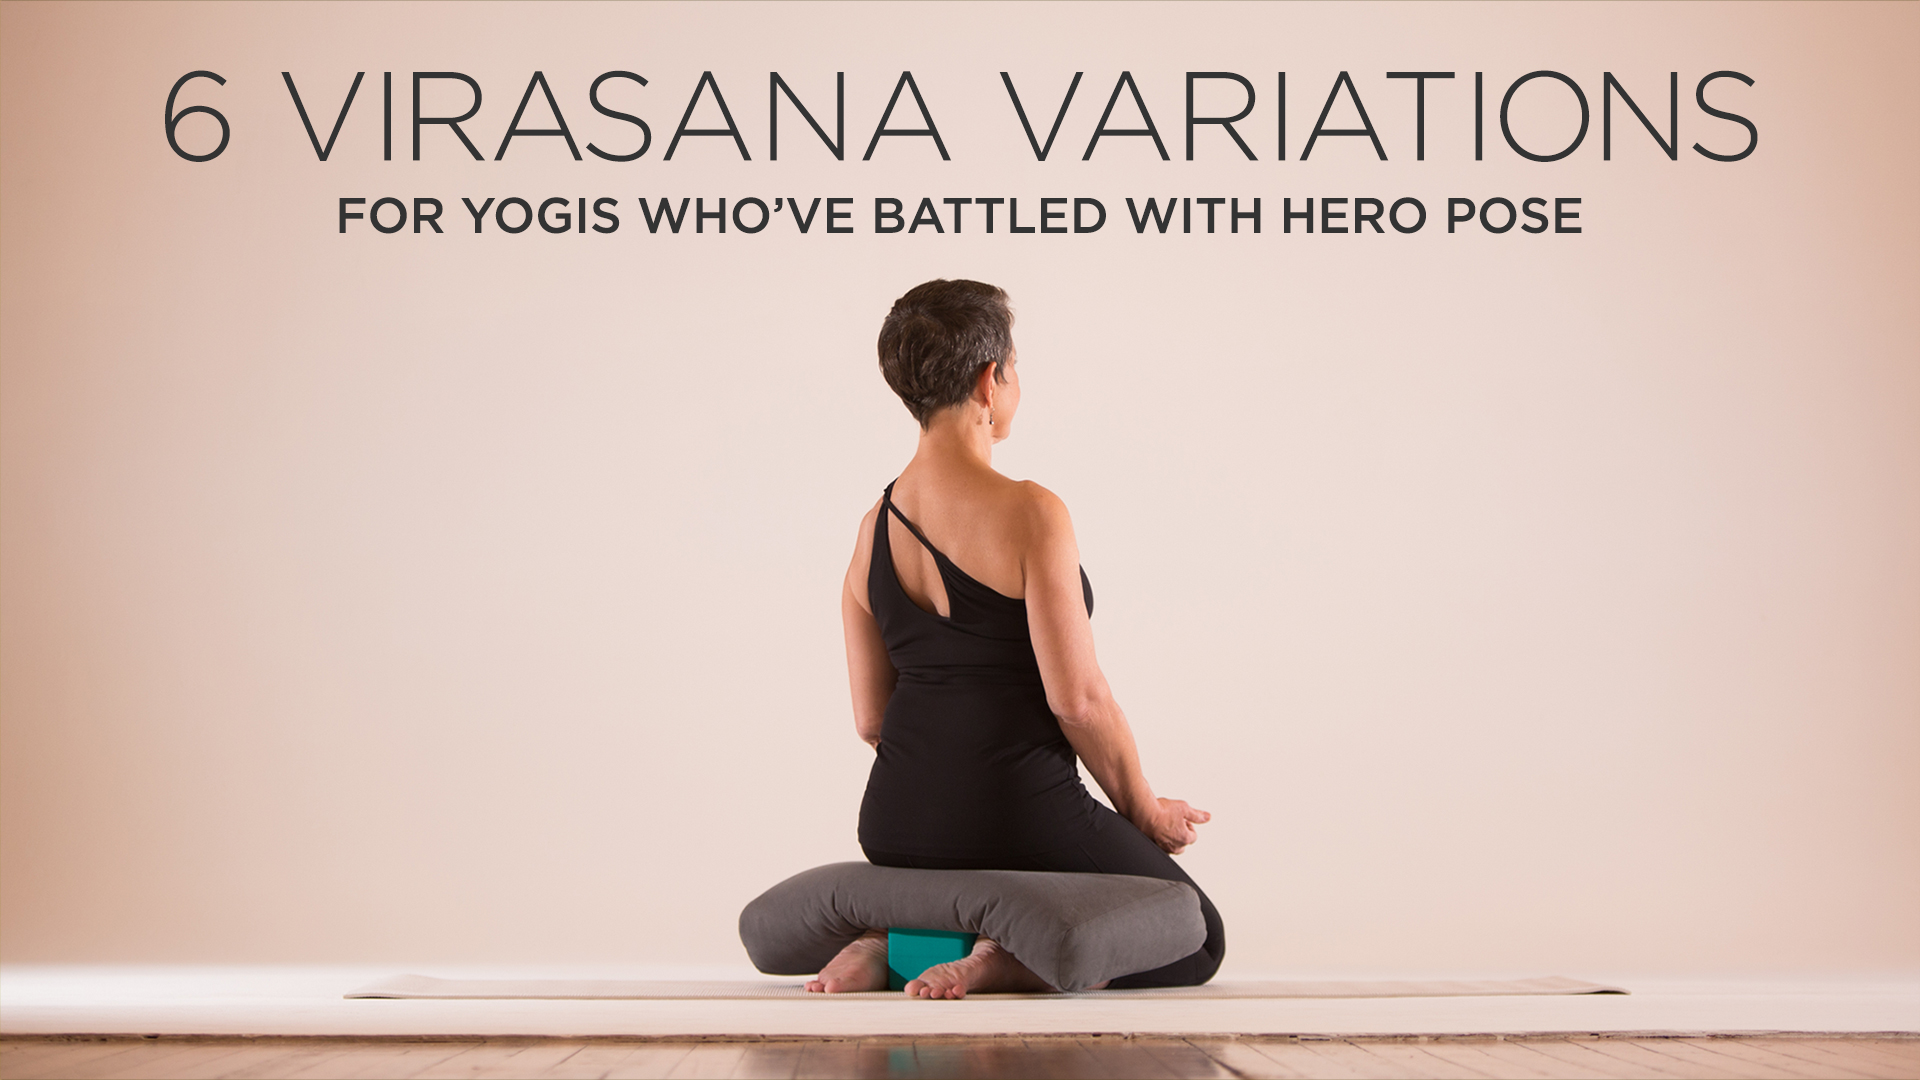 6 Virasana Variations for Yogis Who've Battled With Hero Pose